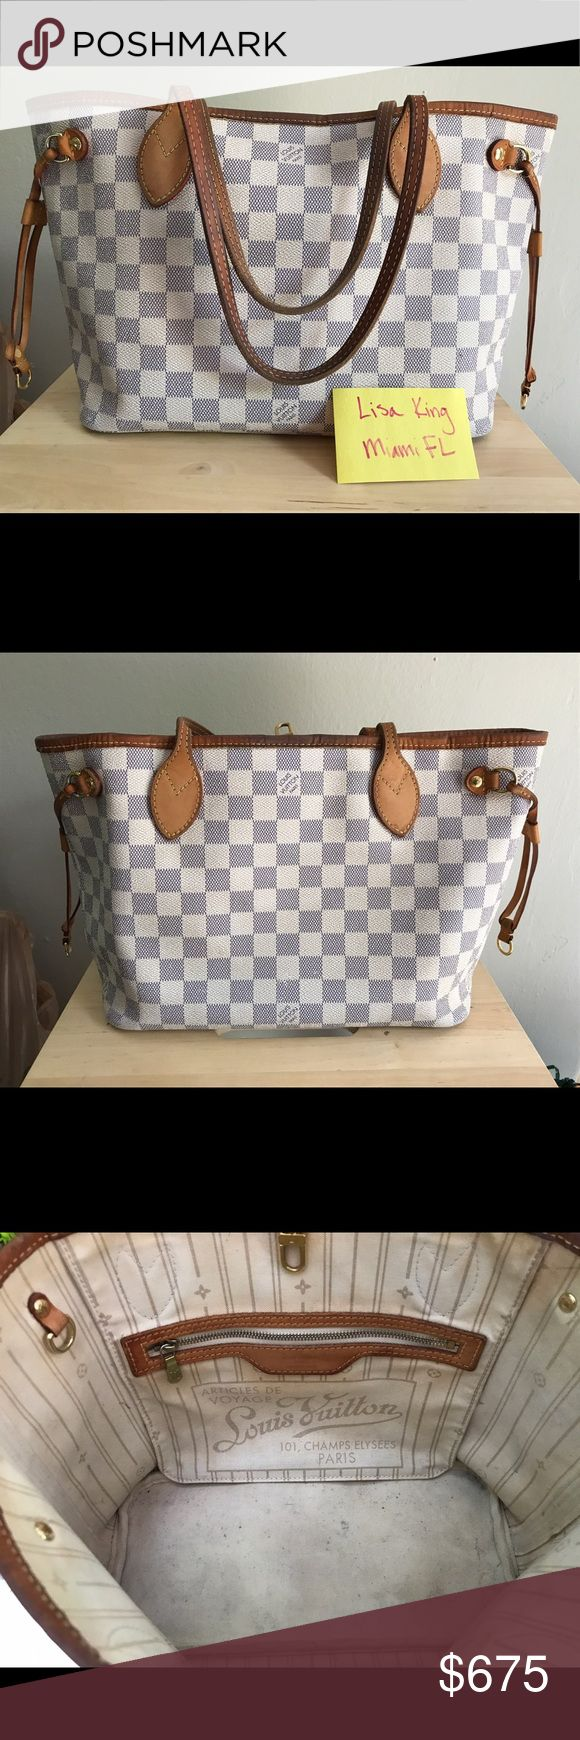 Louis Vuitton Neverfull Damier Azur -PM Gorgeous, 100% authentic Neverfull PM in DA. Flaws shown (stains on interior, darkening of leather with two small rub throughs on trim). Most of leather is a beautiful honey patina and canvas is in fabulous condition. Fabulous bag with lots of life left! Louis Vuitton Bags Shoulder Bags